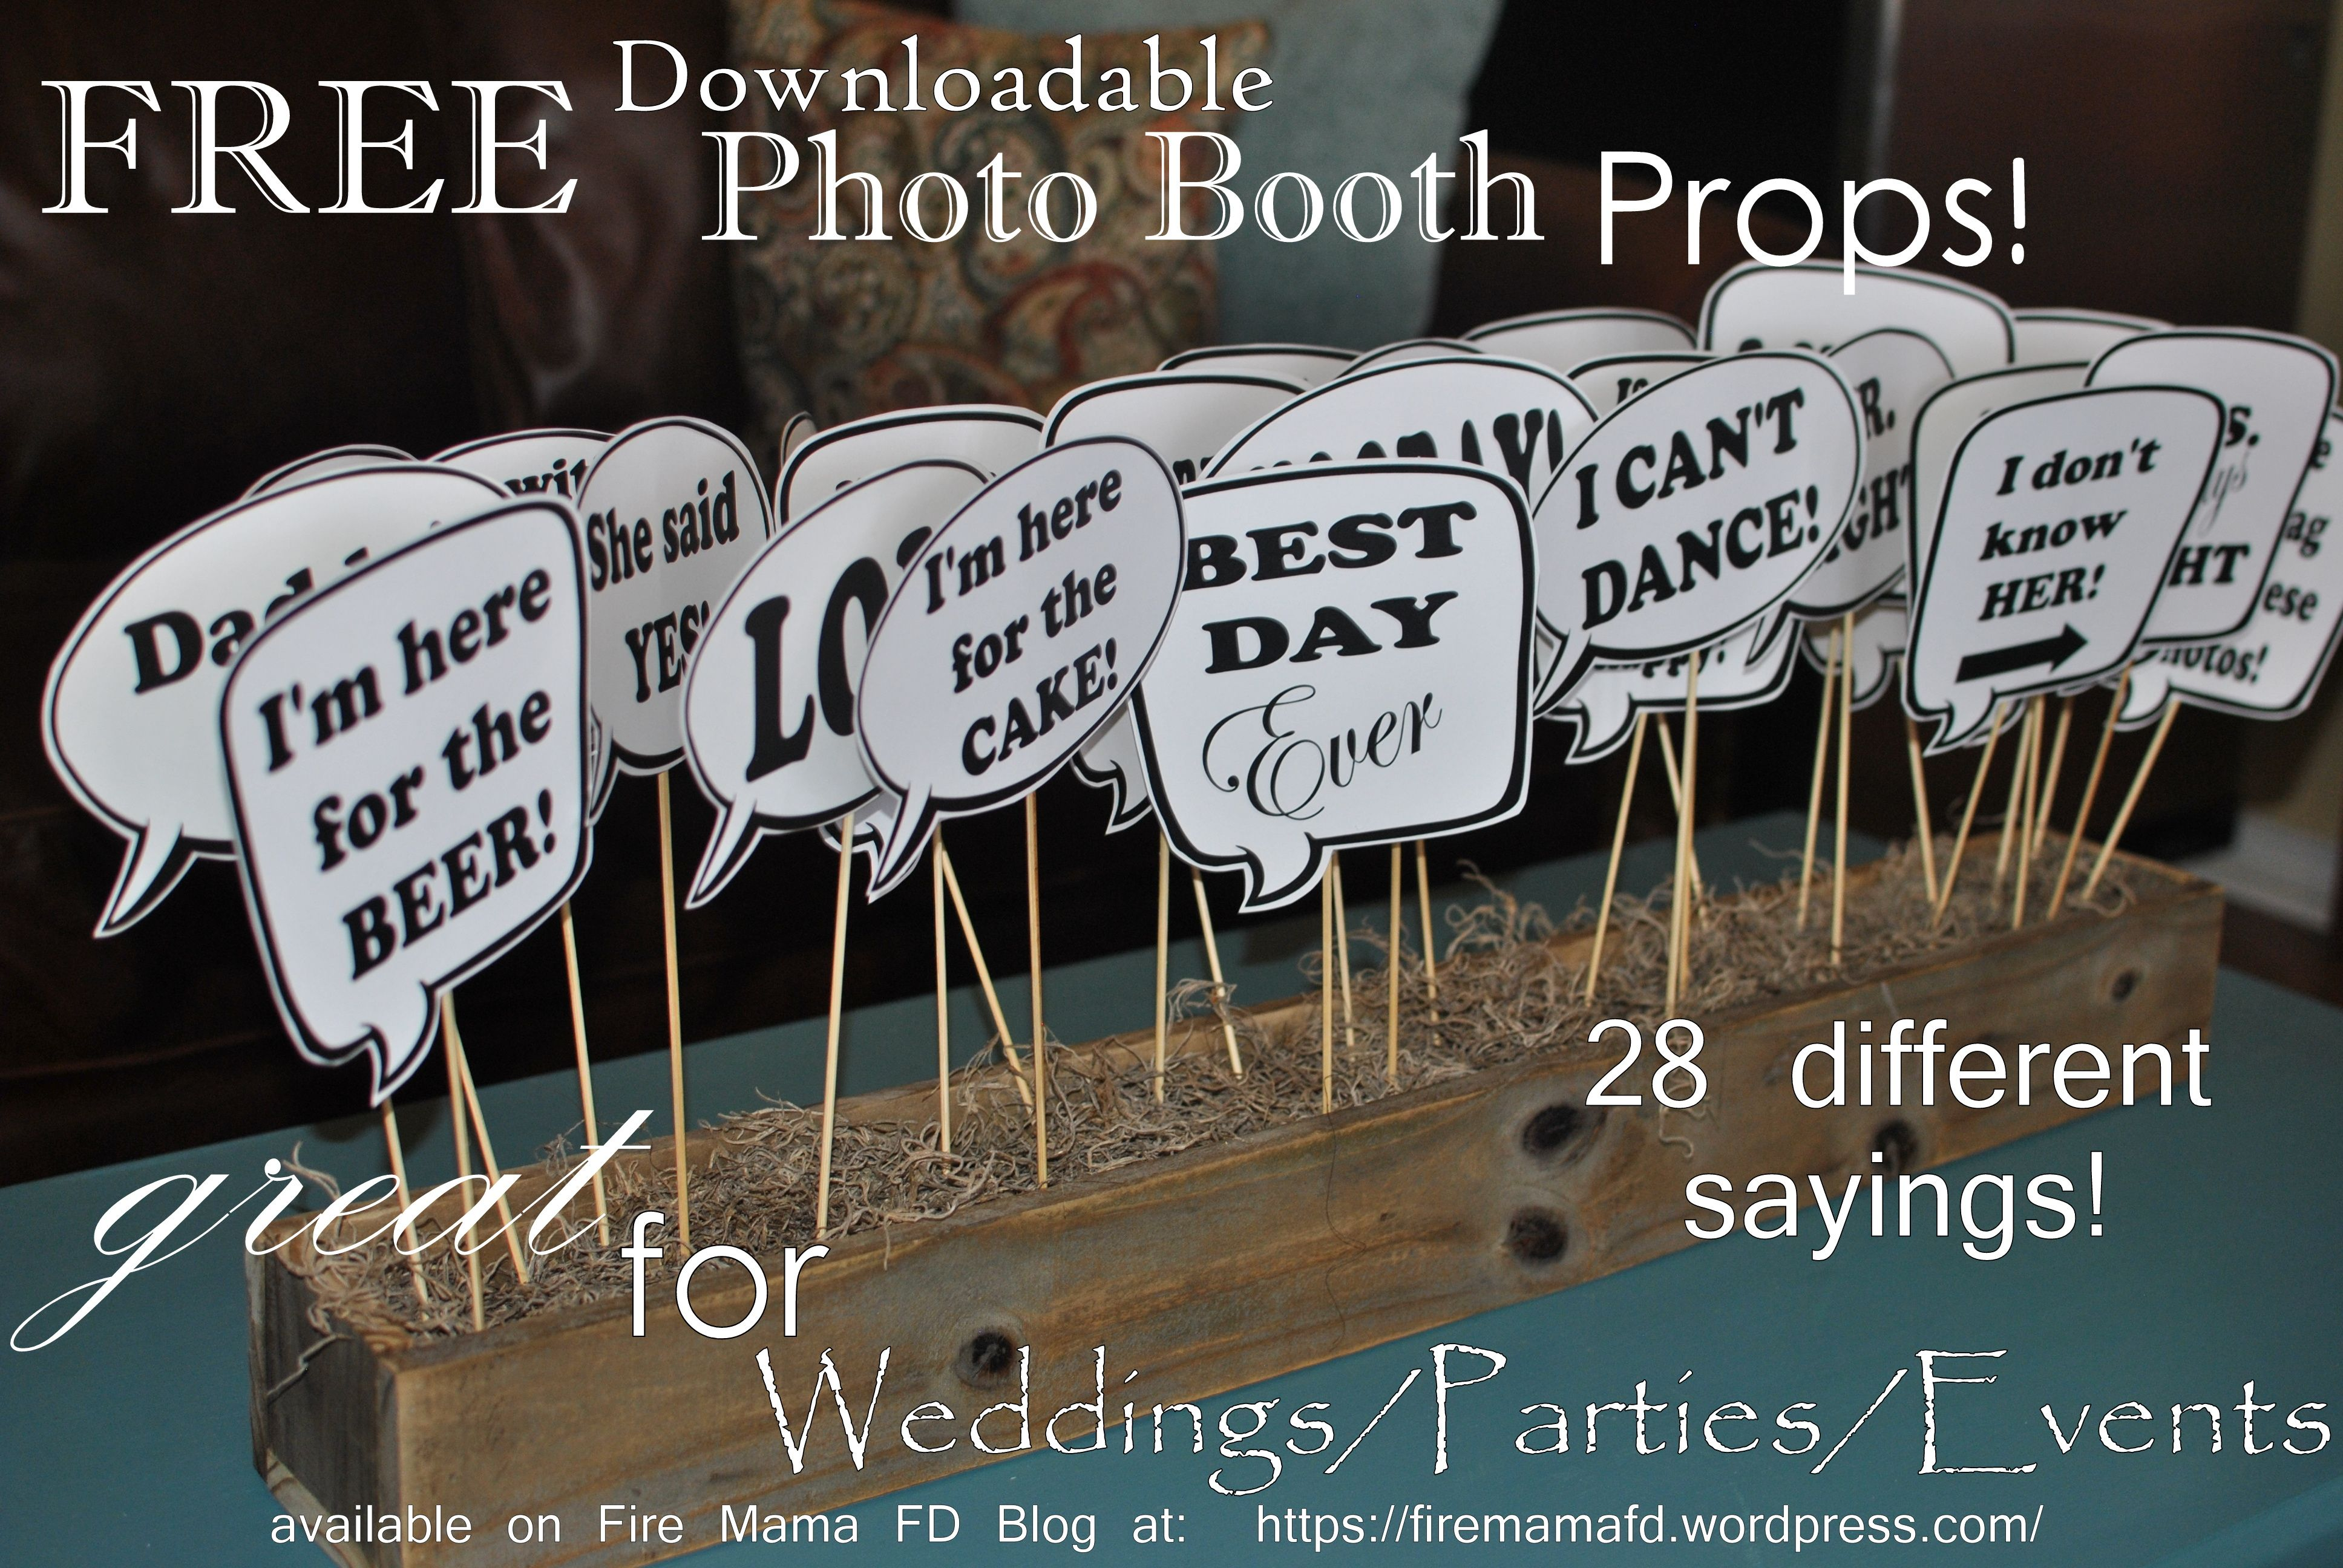 Free Download Of Photo Booth Prop Sayings For Birthdays Weddings